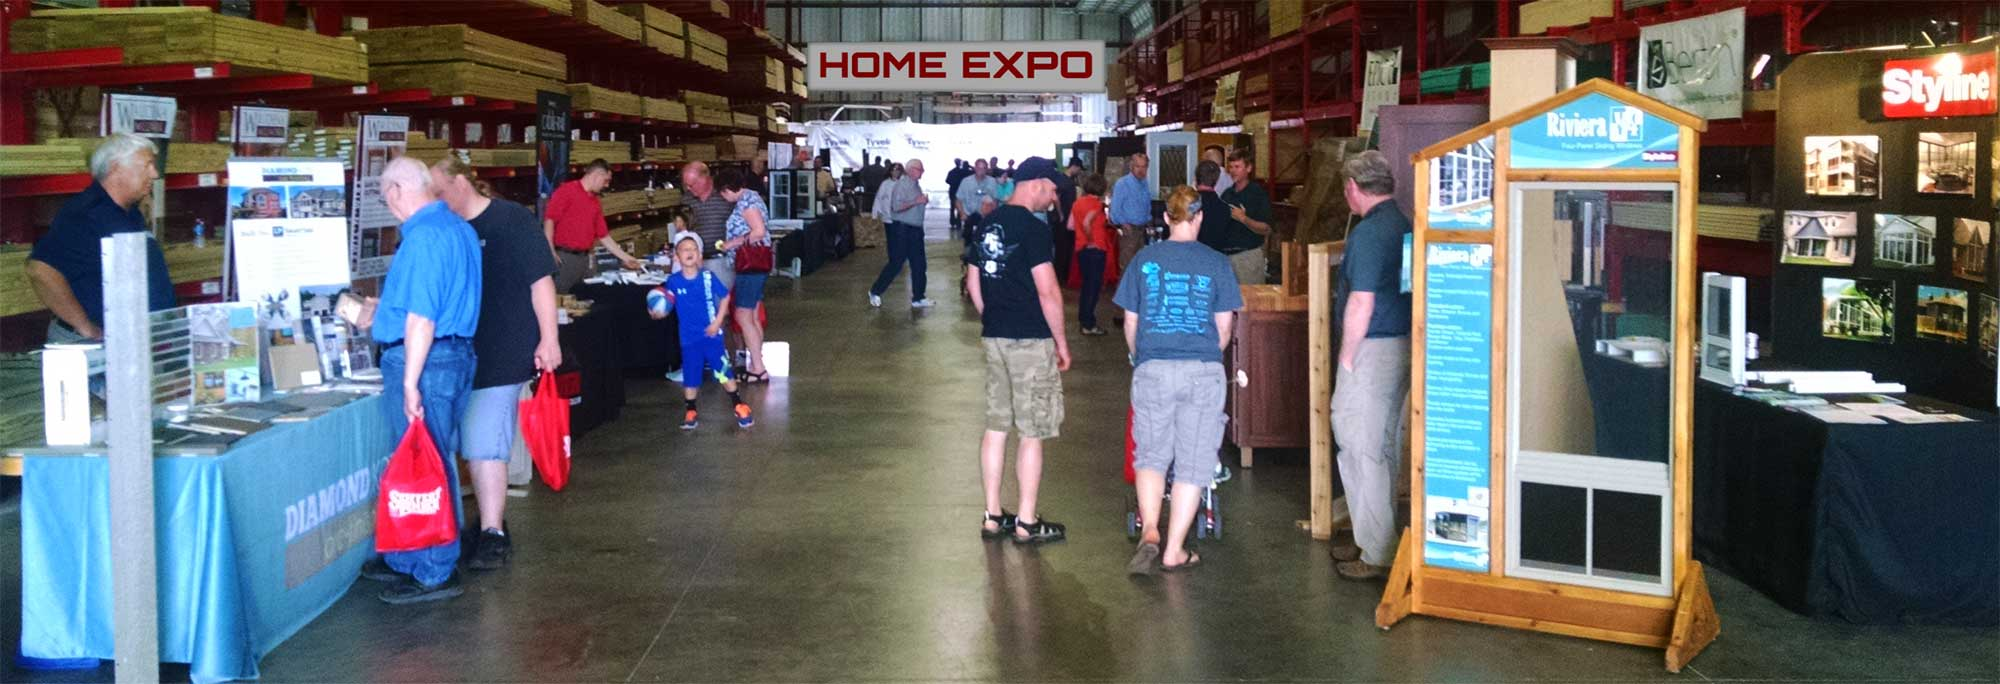 Home Expo Main